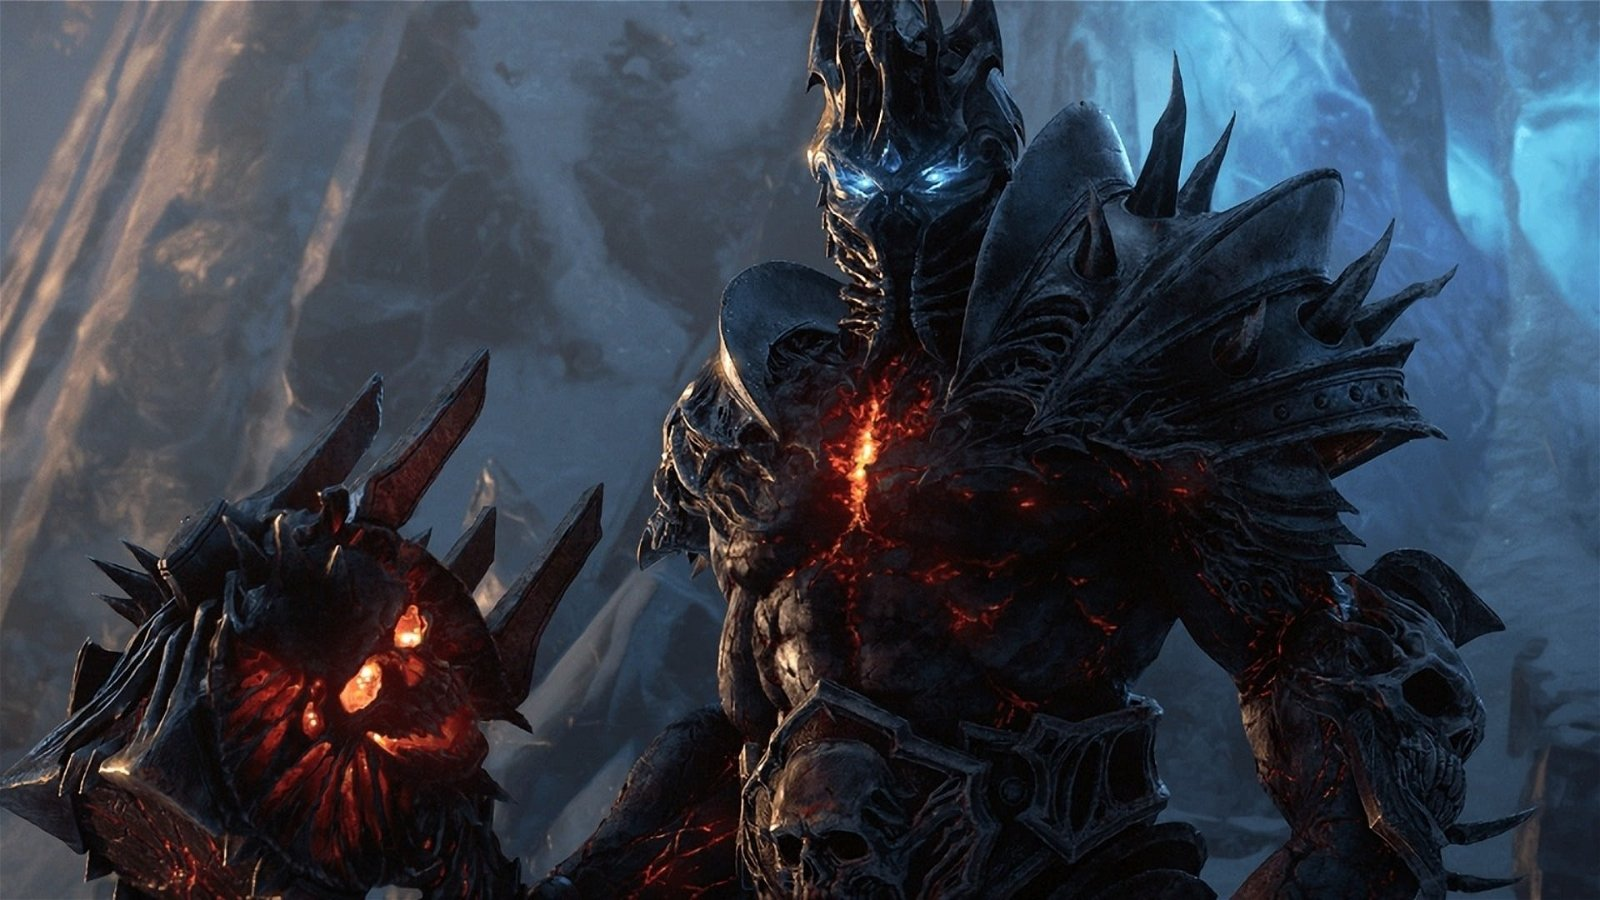 Death Claims Us All In New World of Warcraft: Shadowlands Expansion